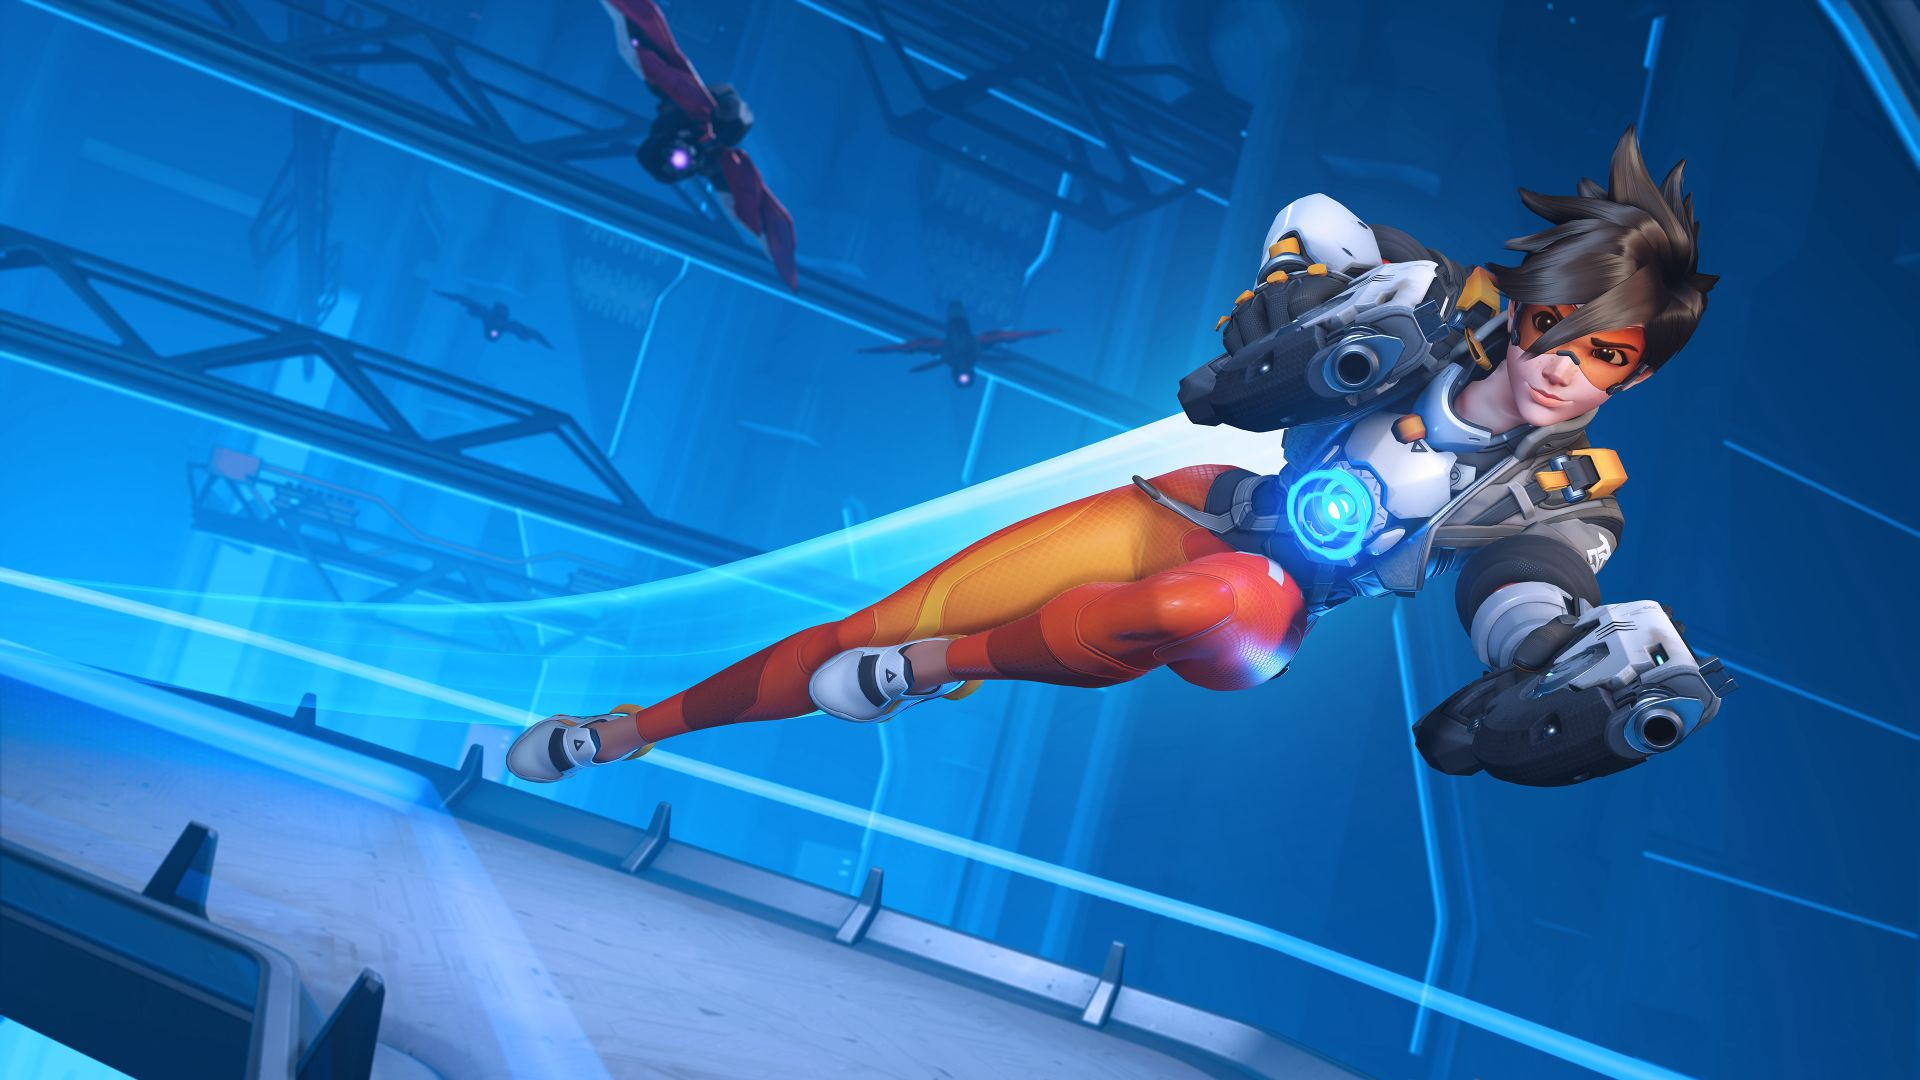 Overwatch 2 Story Campaign Length Hinted At By Developer